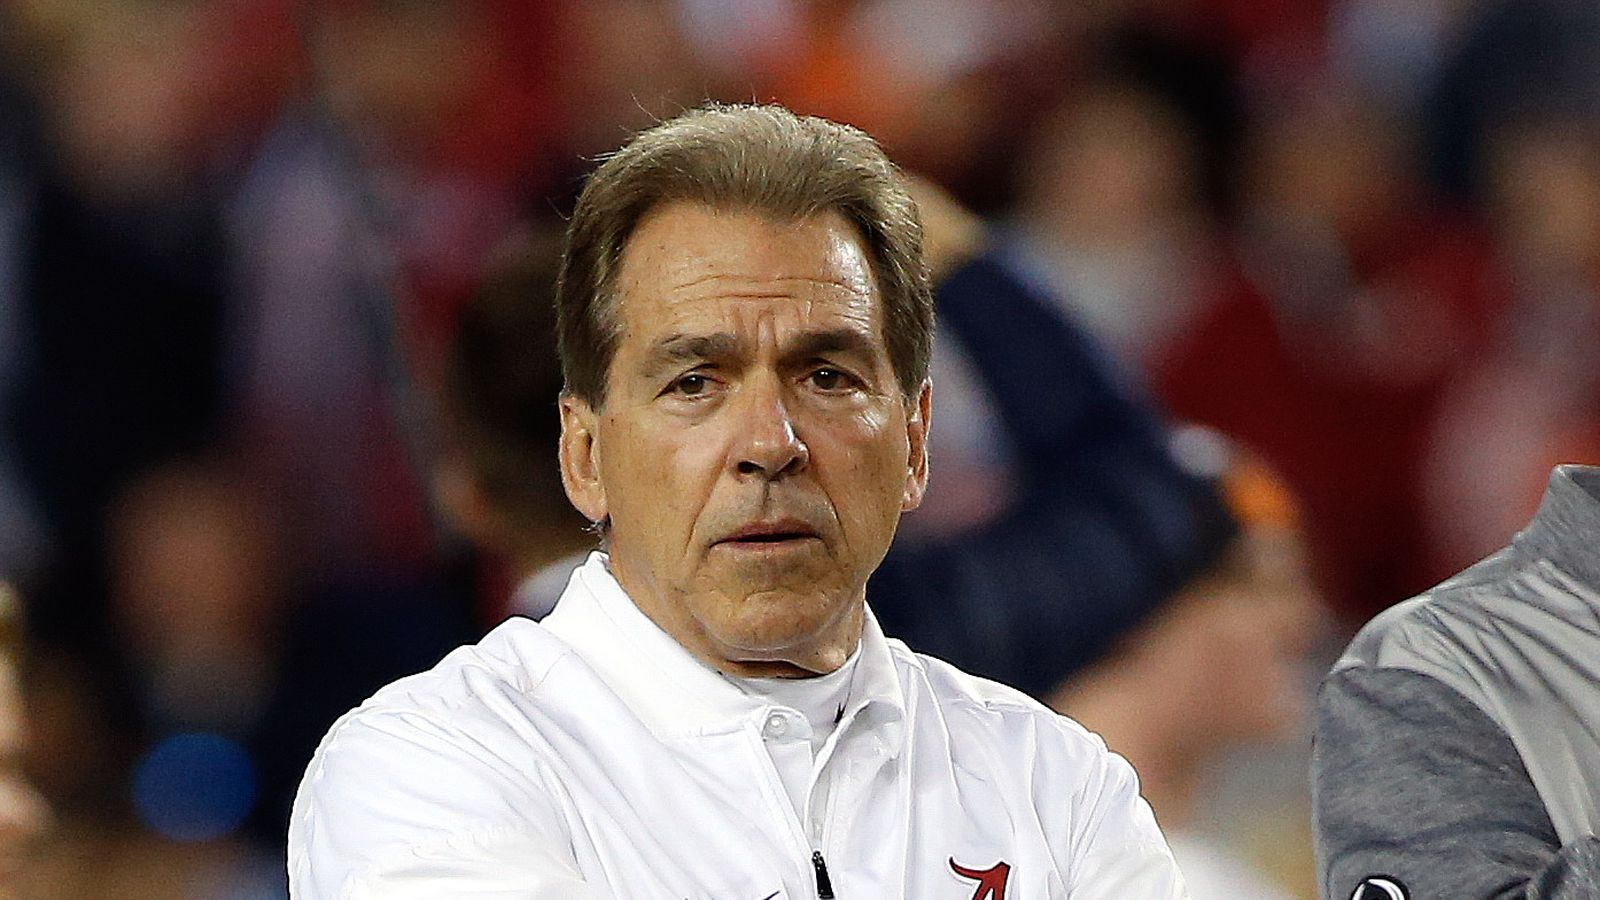 Nick Saban was born on October 31 1951 in Fairmont West Virginia USA as Nick Lou Saban He has been married to Terry Constable since December 18 1971